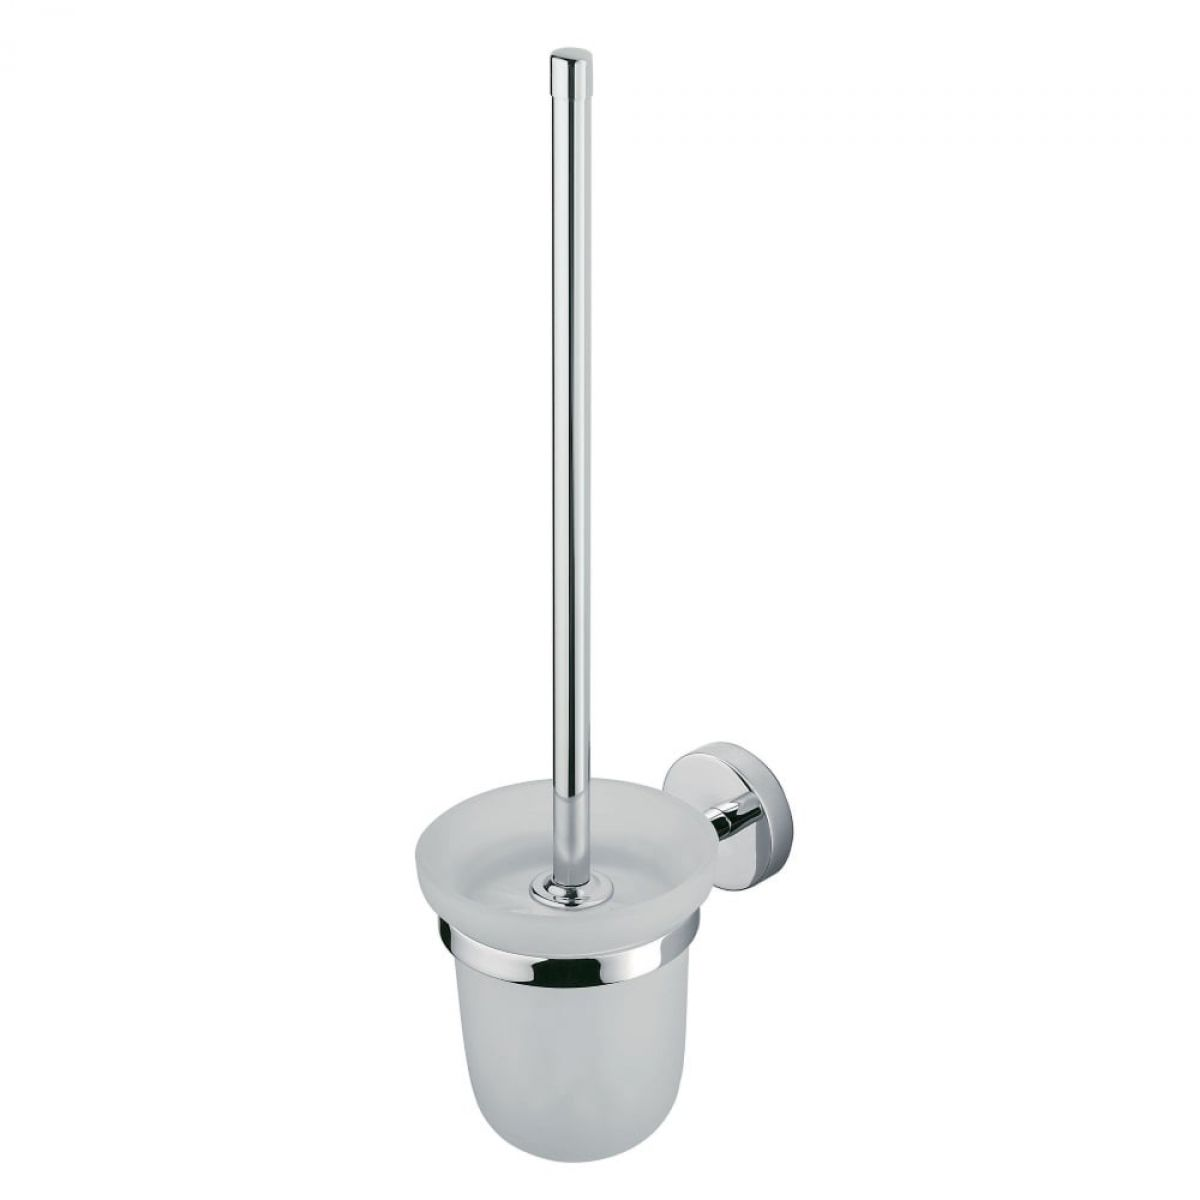 inda forum wall mounted toilet brush holder  x h x cm  uk  - inda forum wall mounted toilet brush holder  x h x cm